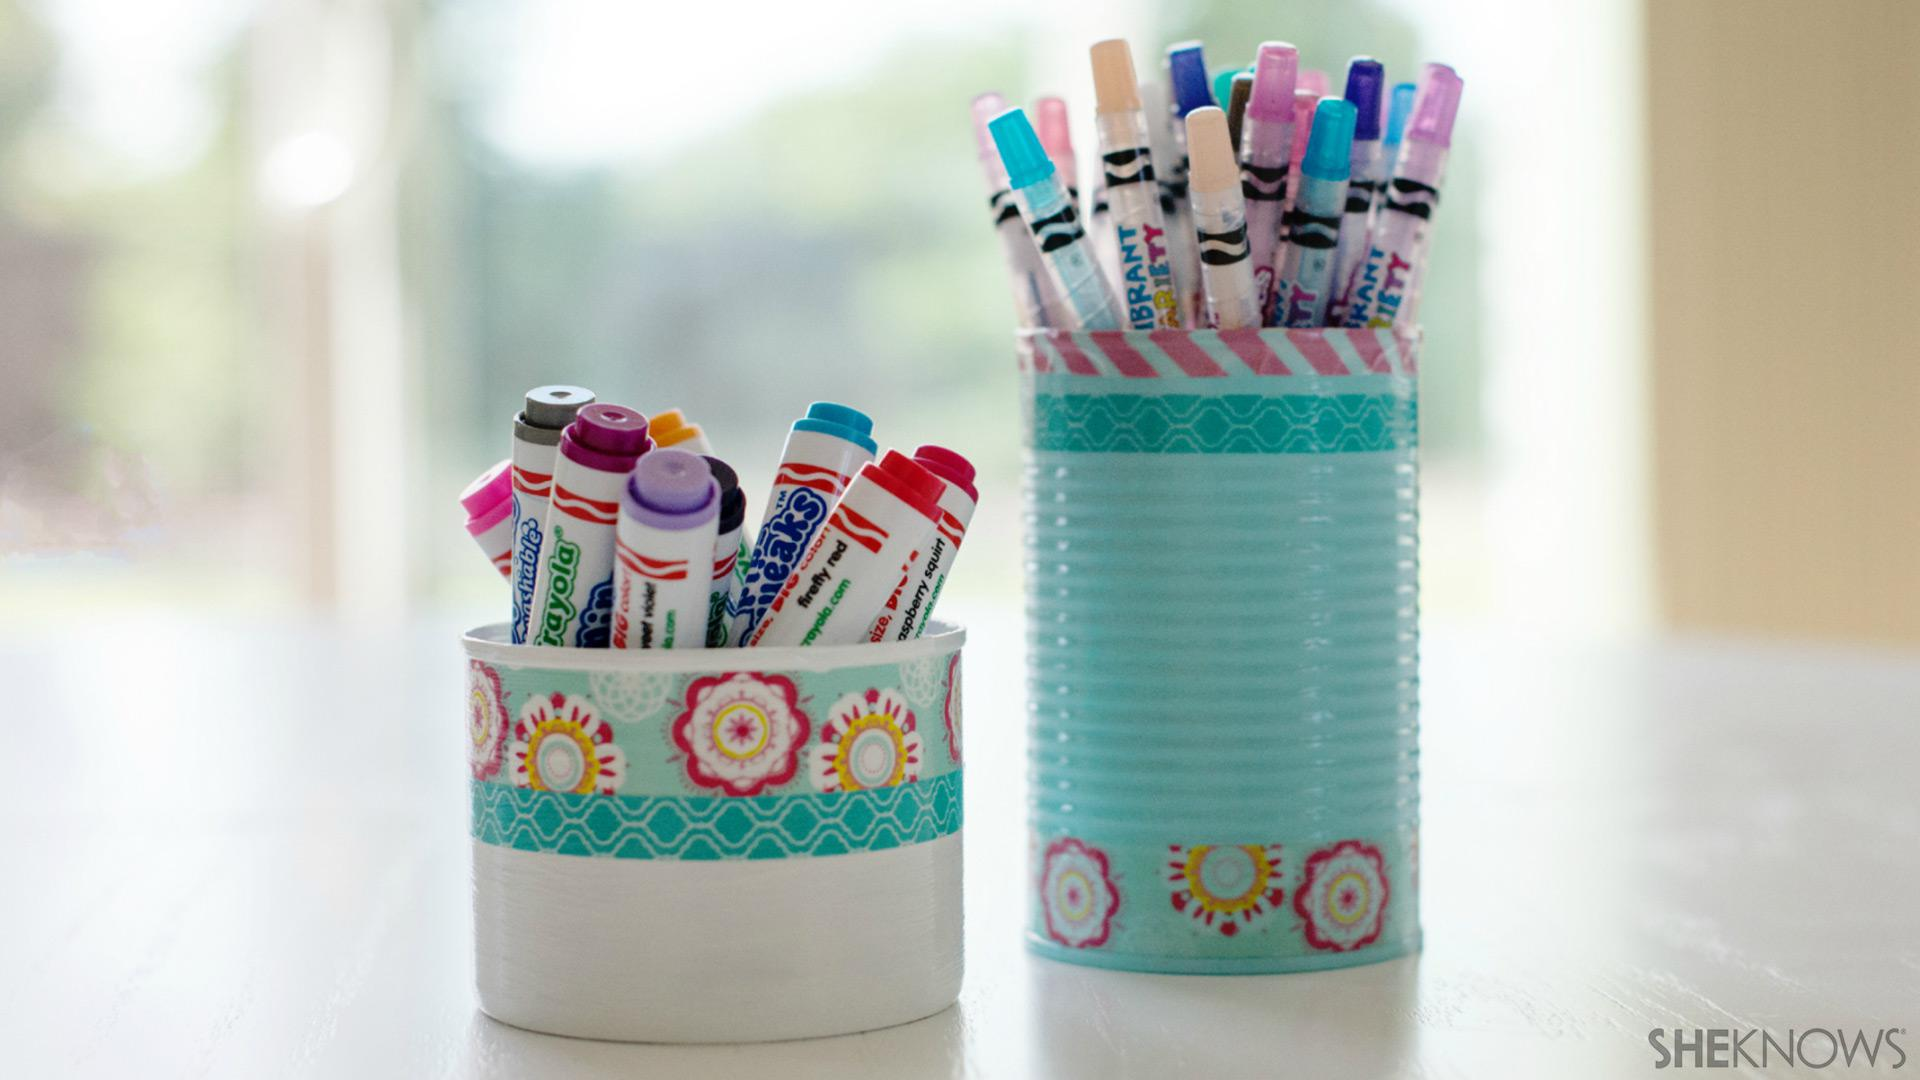 Homemade Pencil Holders Cute Diy Pencil Holders Help Tame School Clutter Sheknows